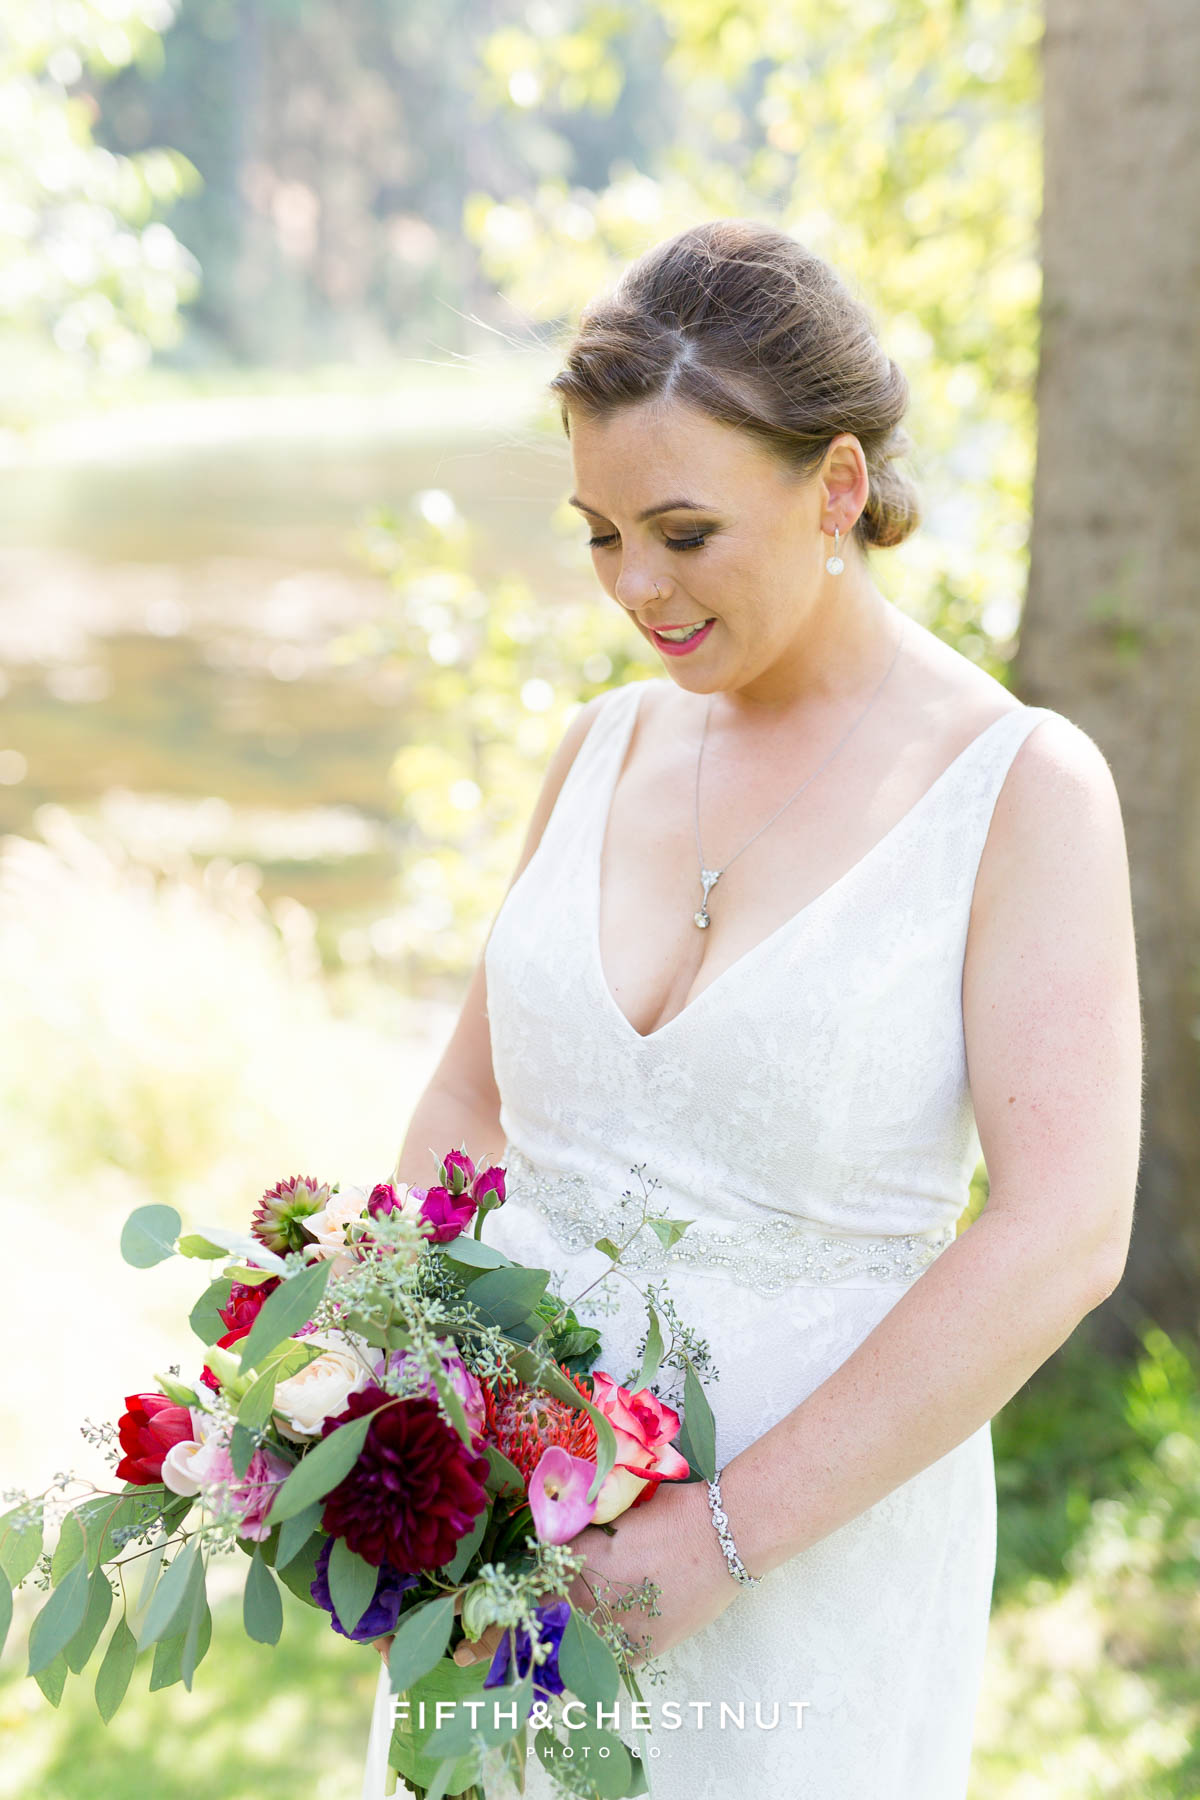 bride looks down at her wedding flowers while wearing a lacy white wedding dress